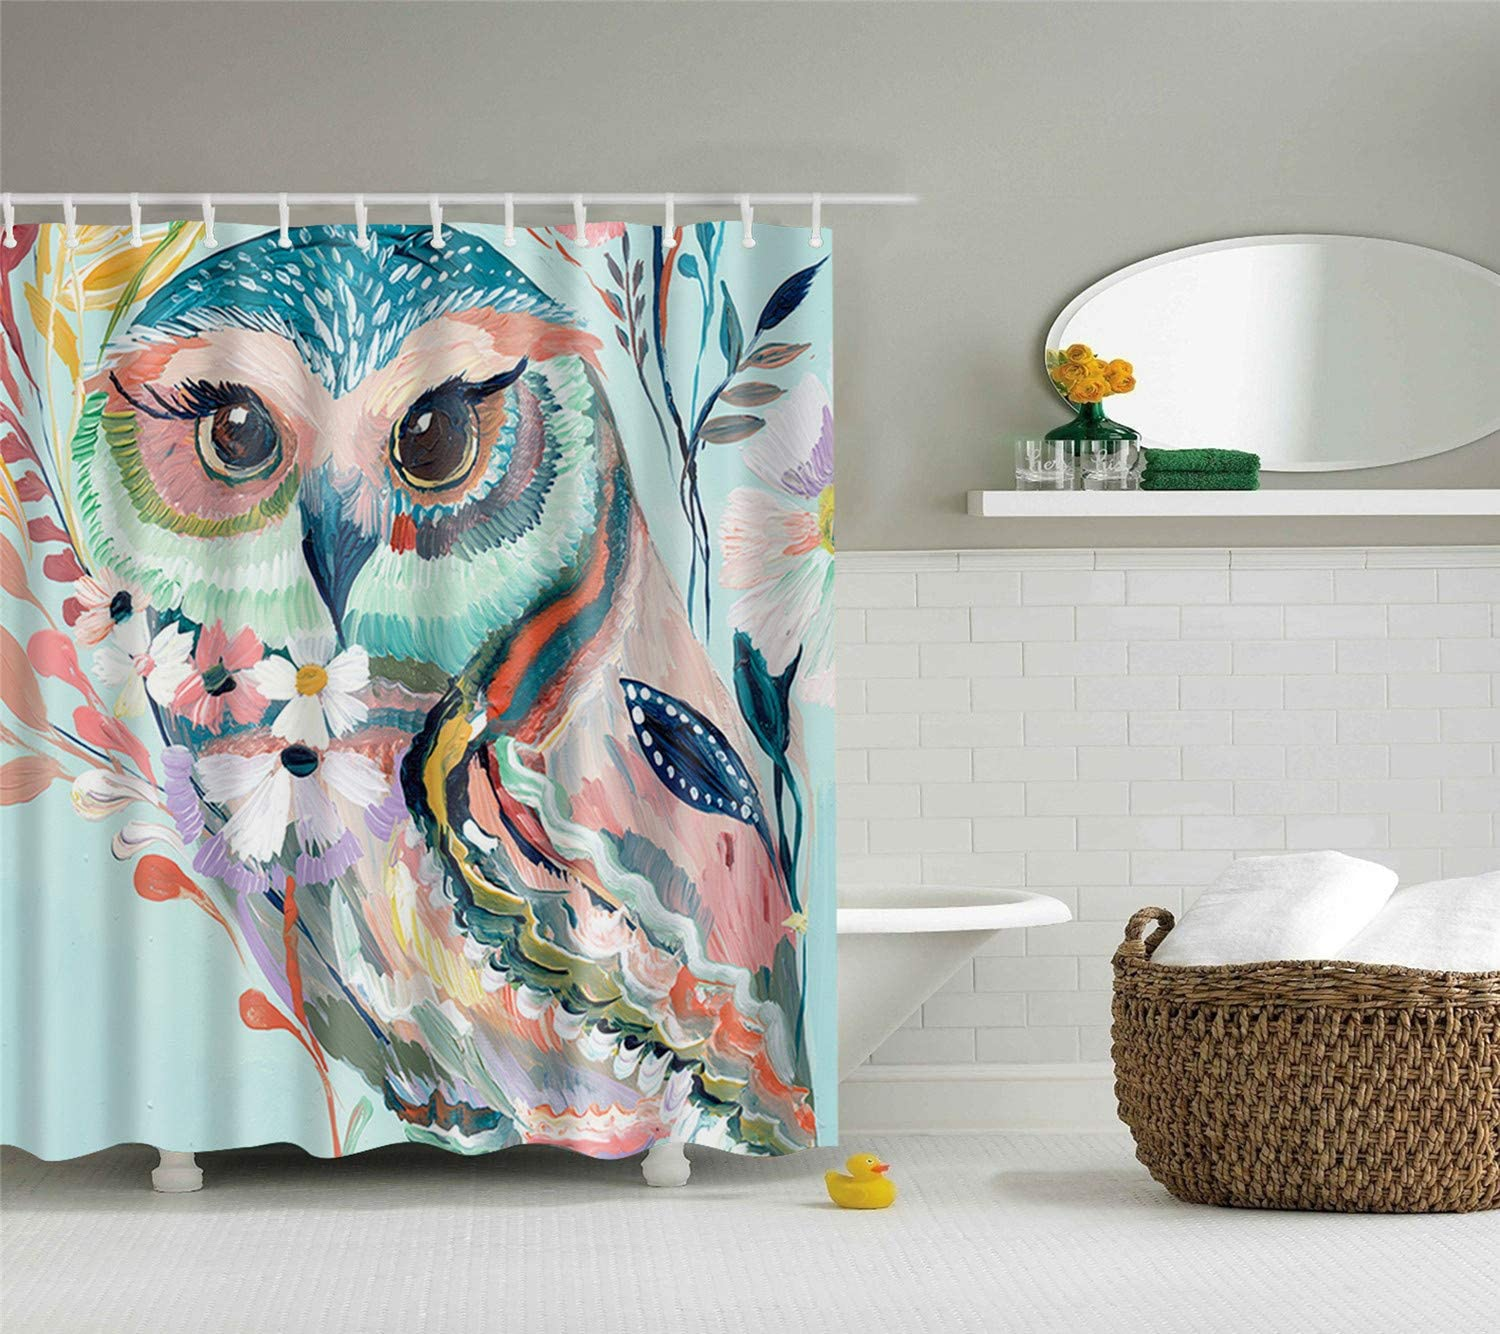 hipaopao Watercolor Owl Digital Printing Cute Fabric Shower Curtain Sets  Bathroom Decor with Hooks Waterproof Washable 10 x 10 inches Blue Green  Black